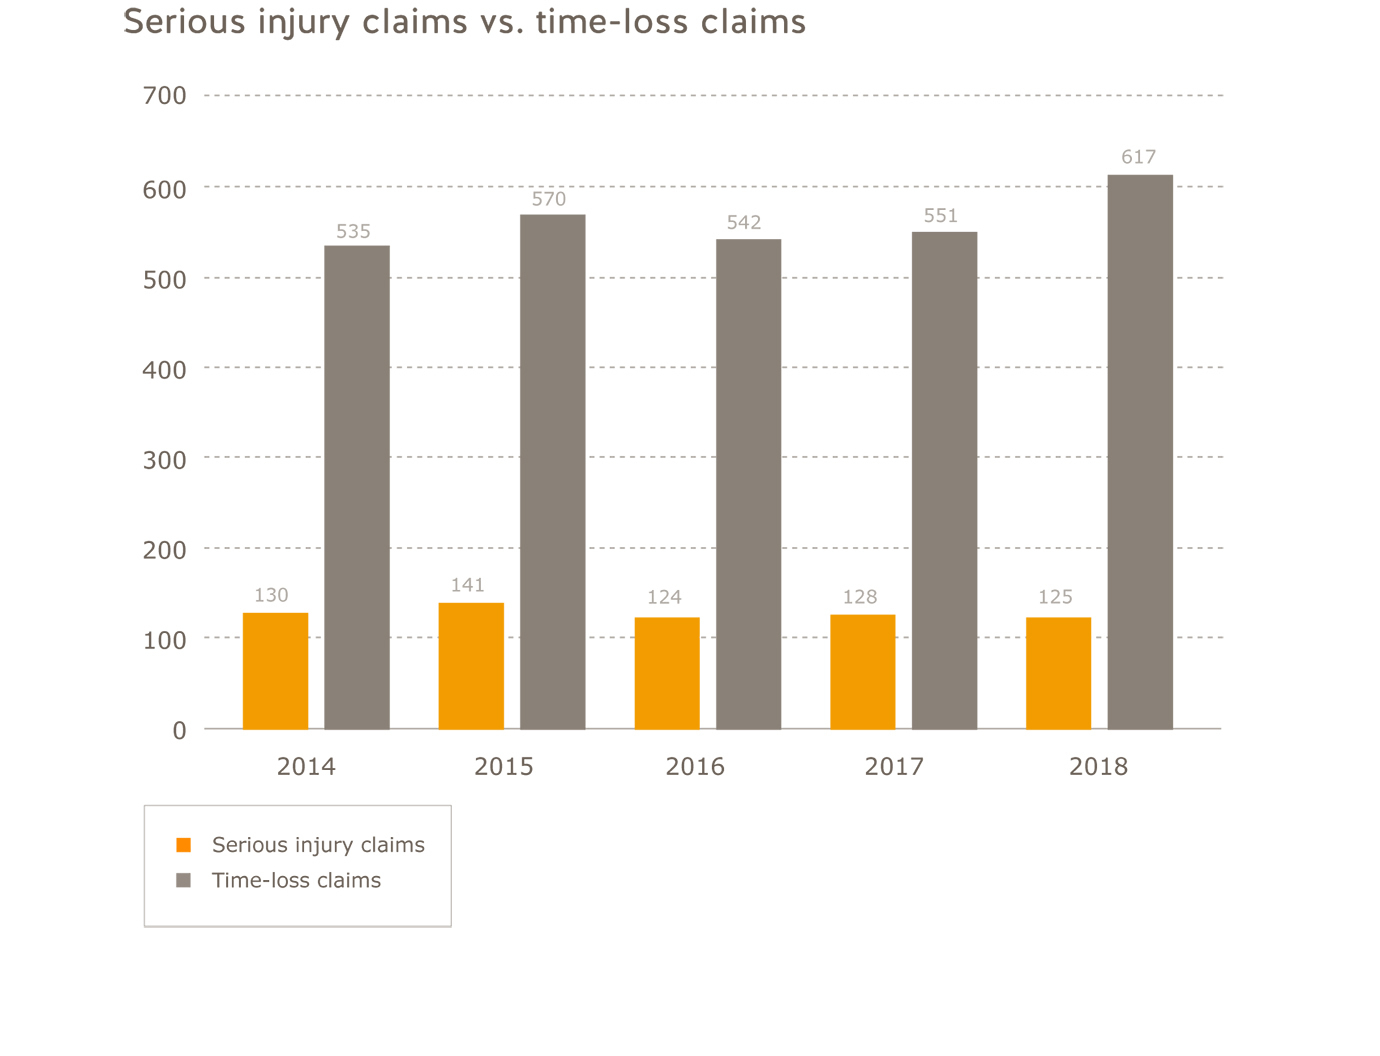 Agriculture sector serious injury claims vs. time-loss claims for 2014 to 2018. Serious injury claims=2014=130; 2015=141; 2016=124; 2017=128; 2018=125. Time-loss claims=2014=535; 2015=570; 2016=542; 2017=551; 2018=617.